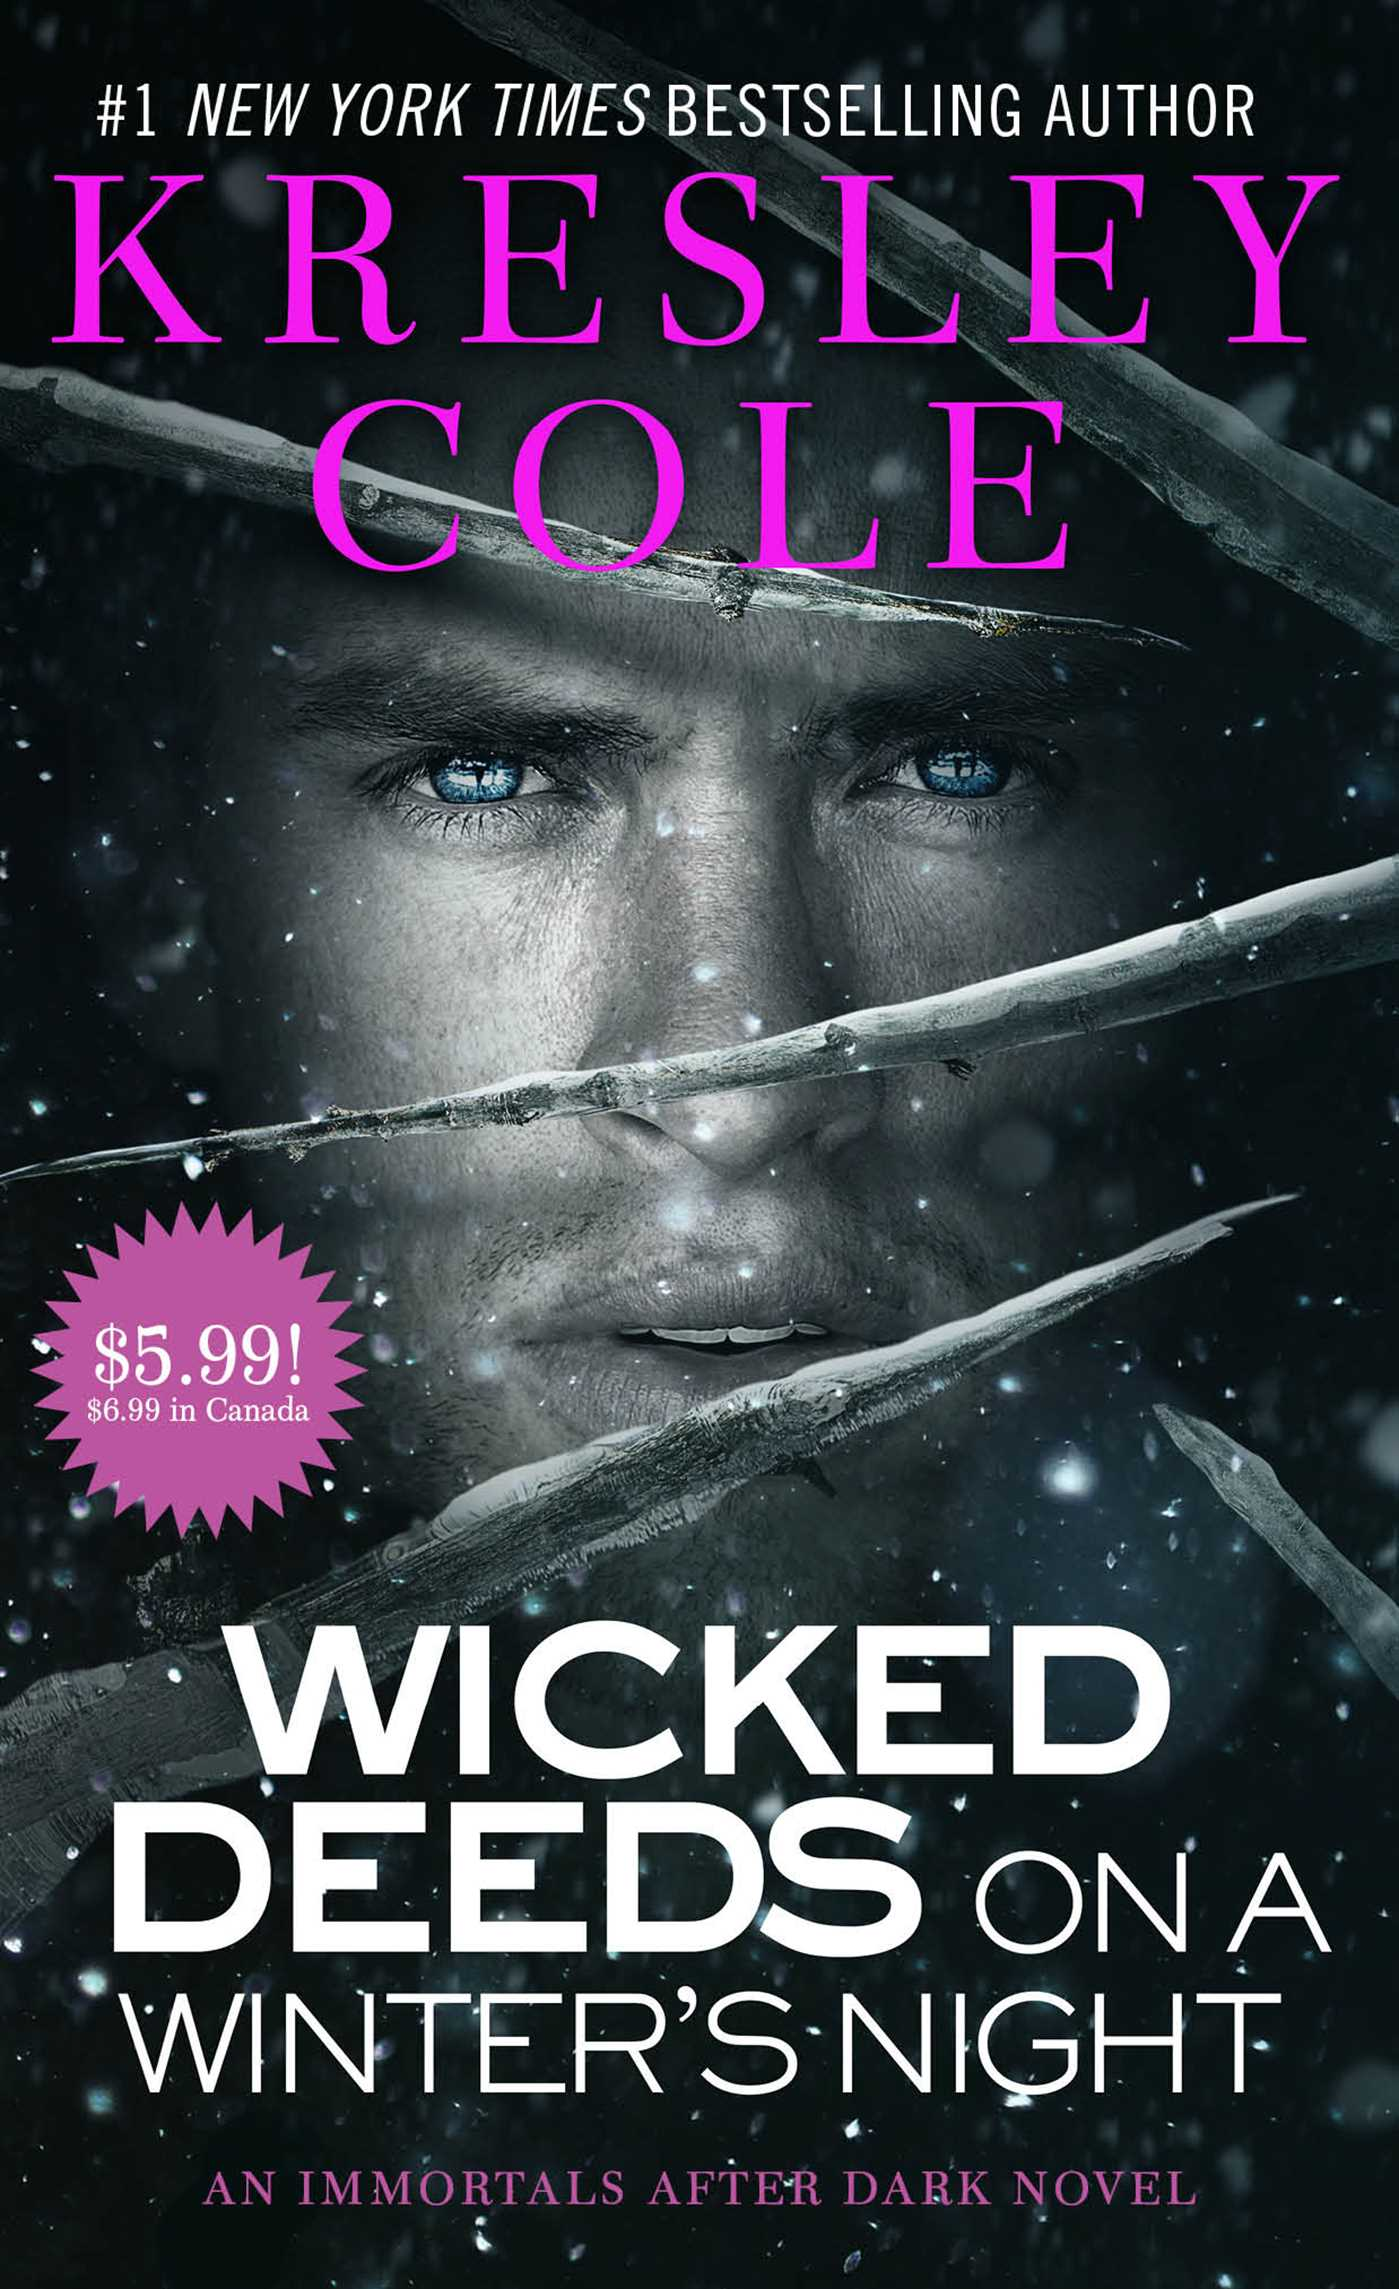 Wicked deeds on a winters night 9781501120633 hr